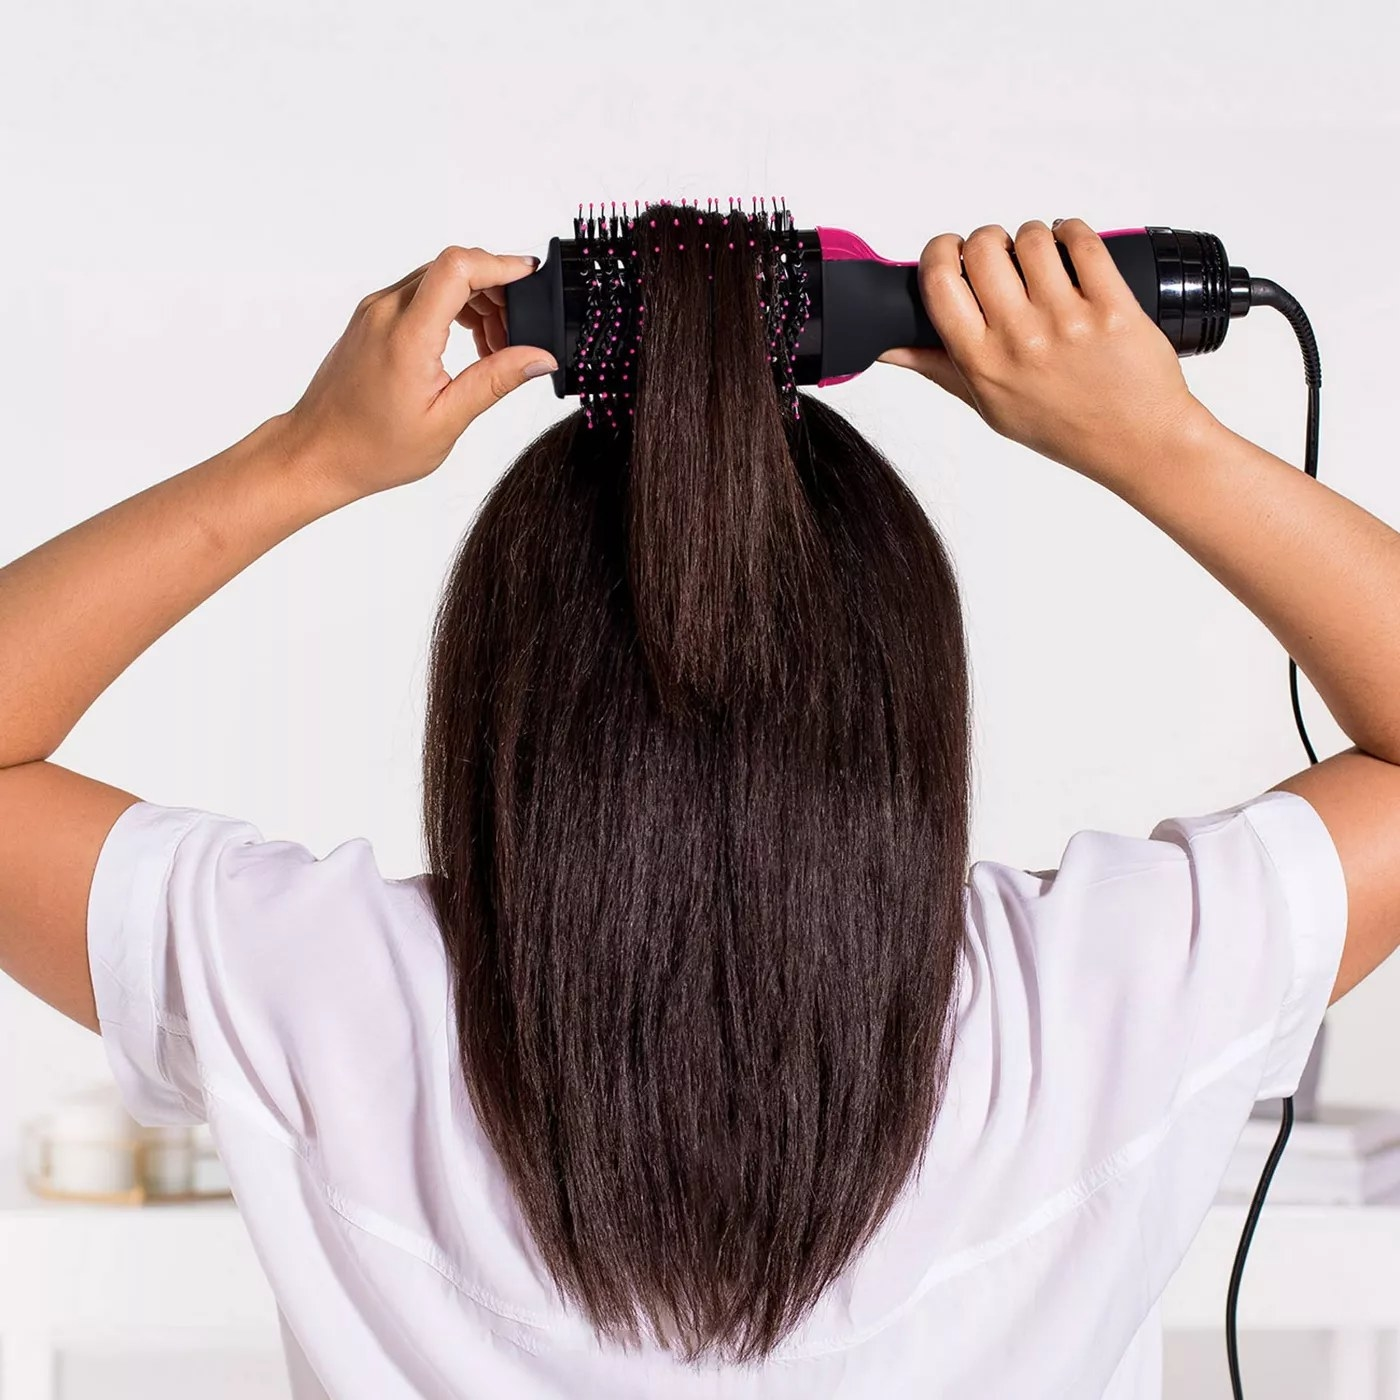 A model styling their hair with the hair dryer and volumizer